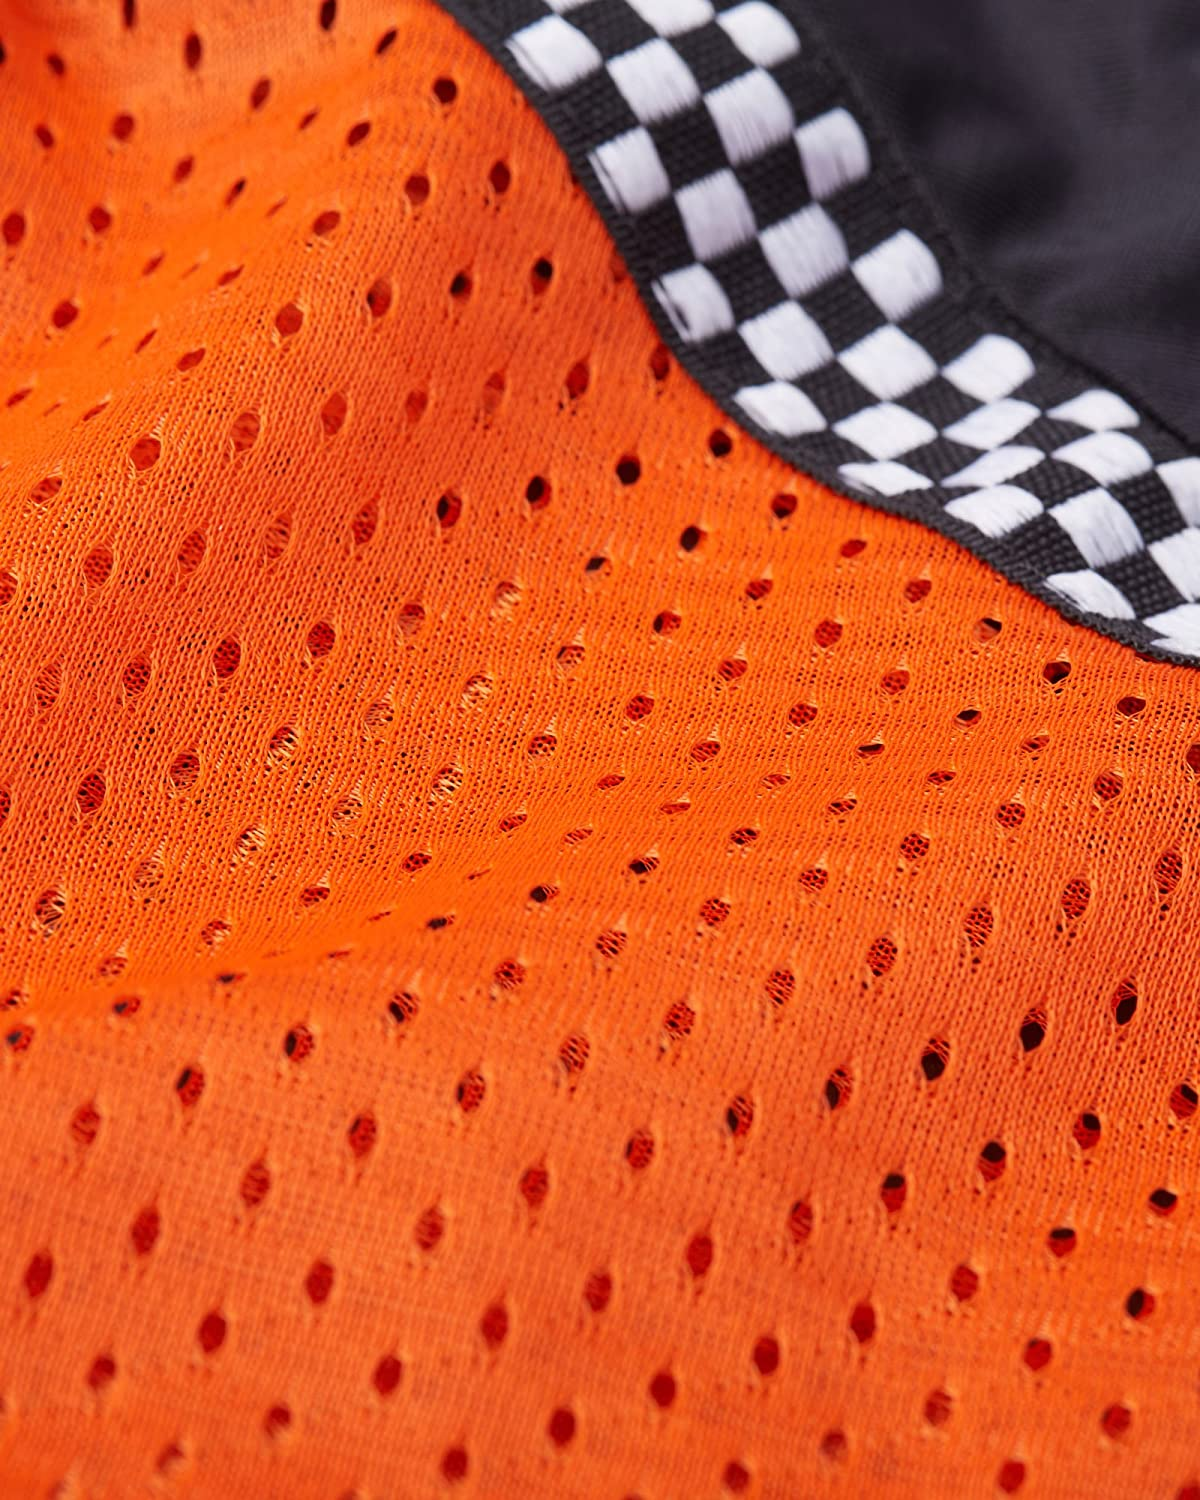 Bohn All-Season Airtex Armored Riding Shirt Orange//Black X-Small